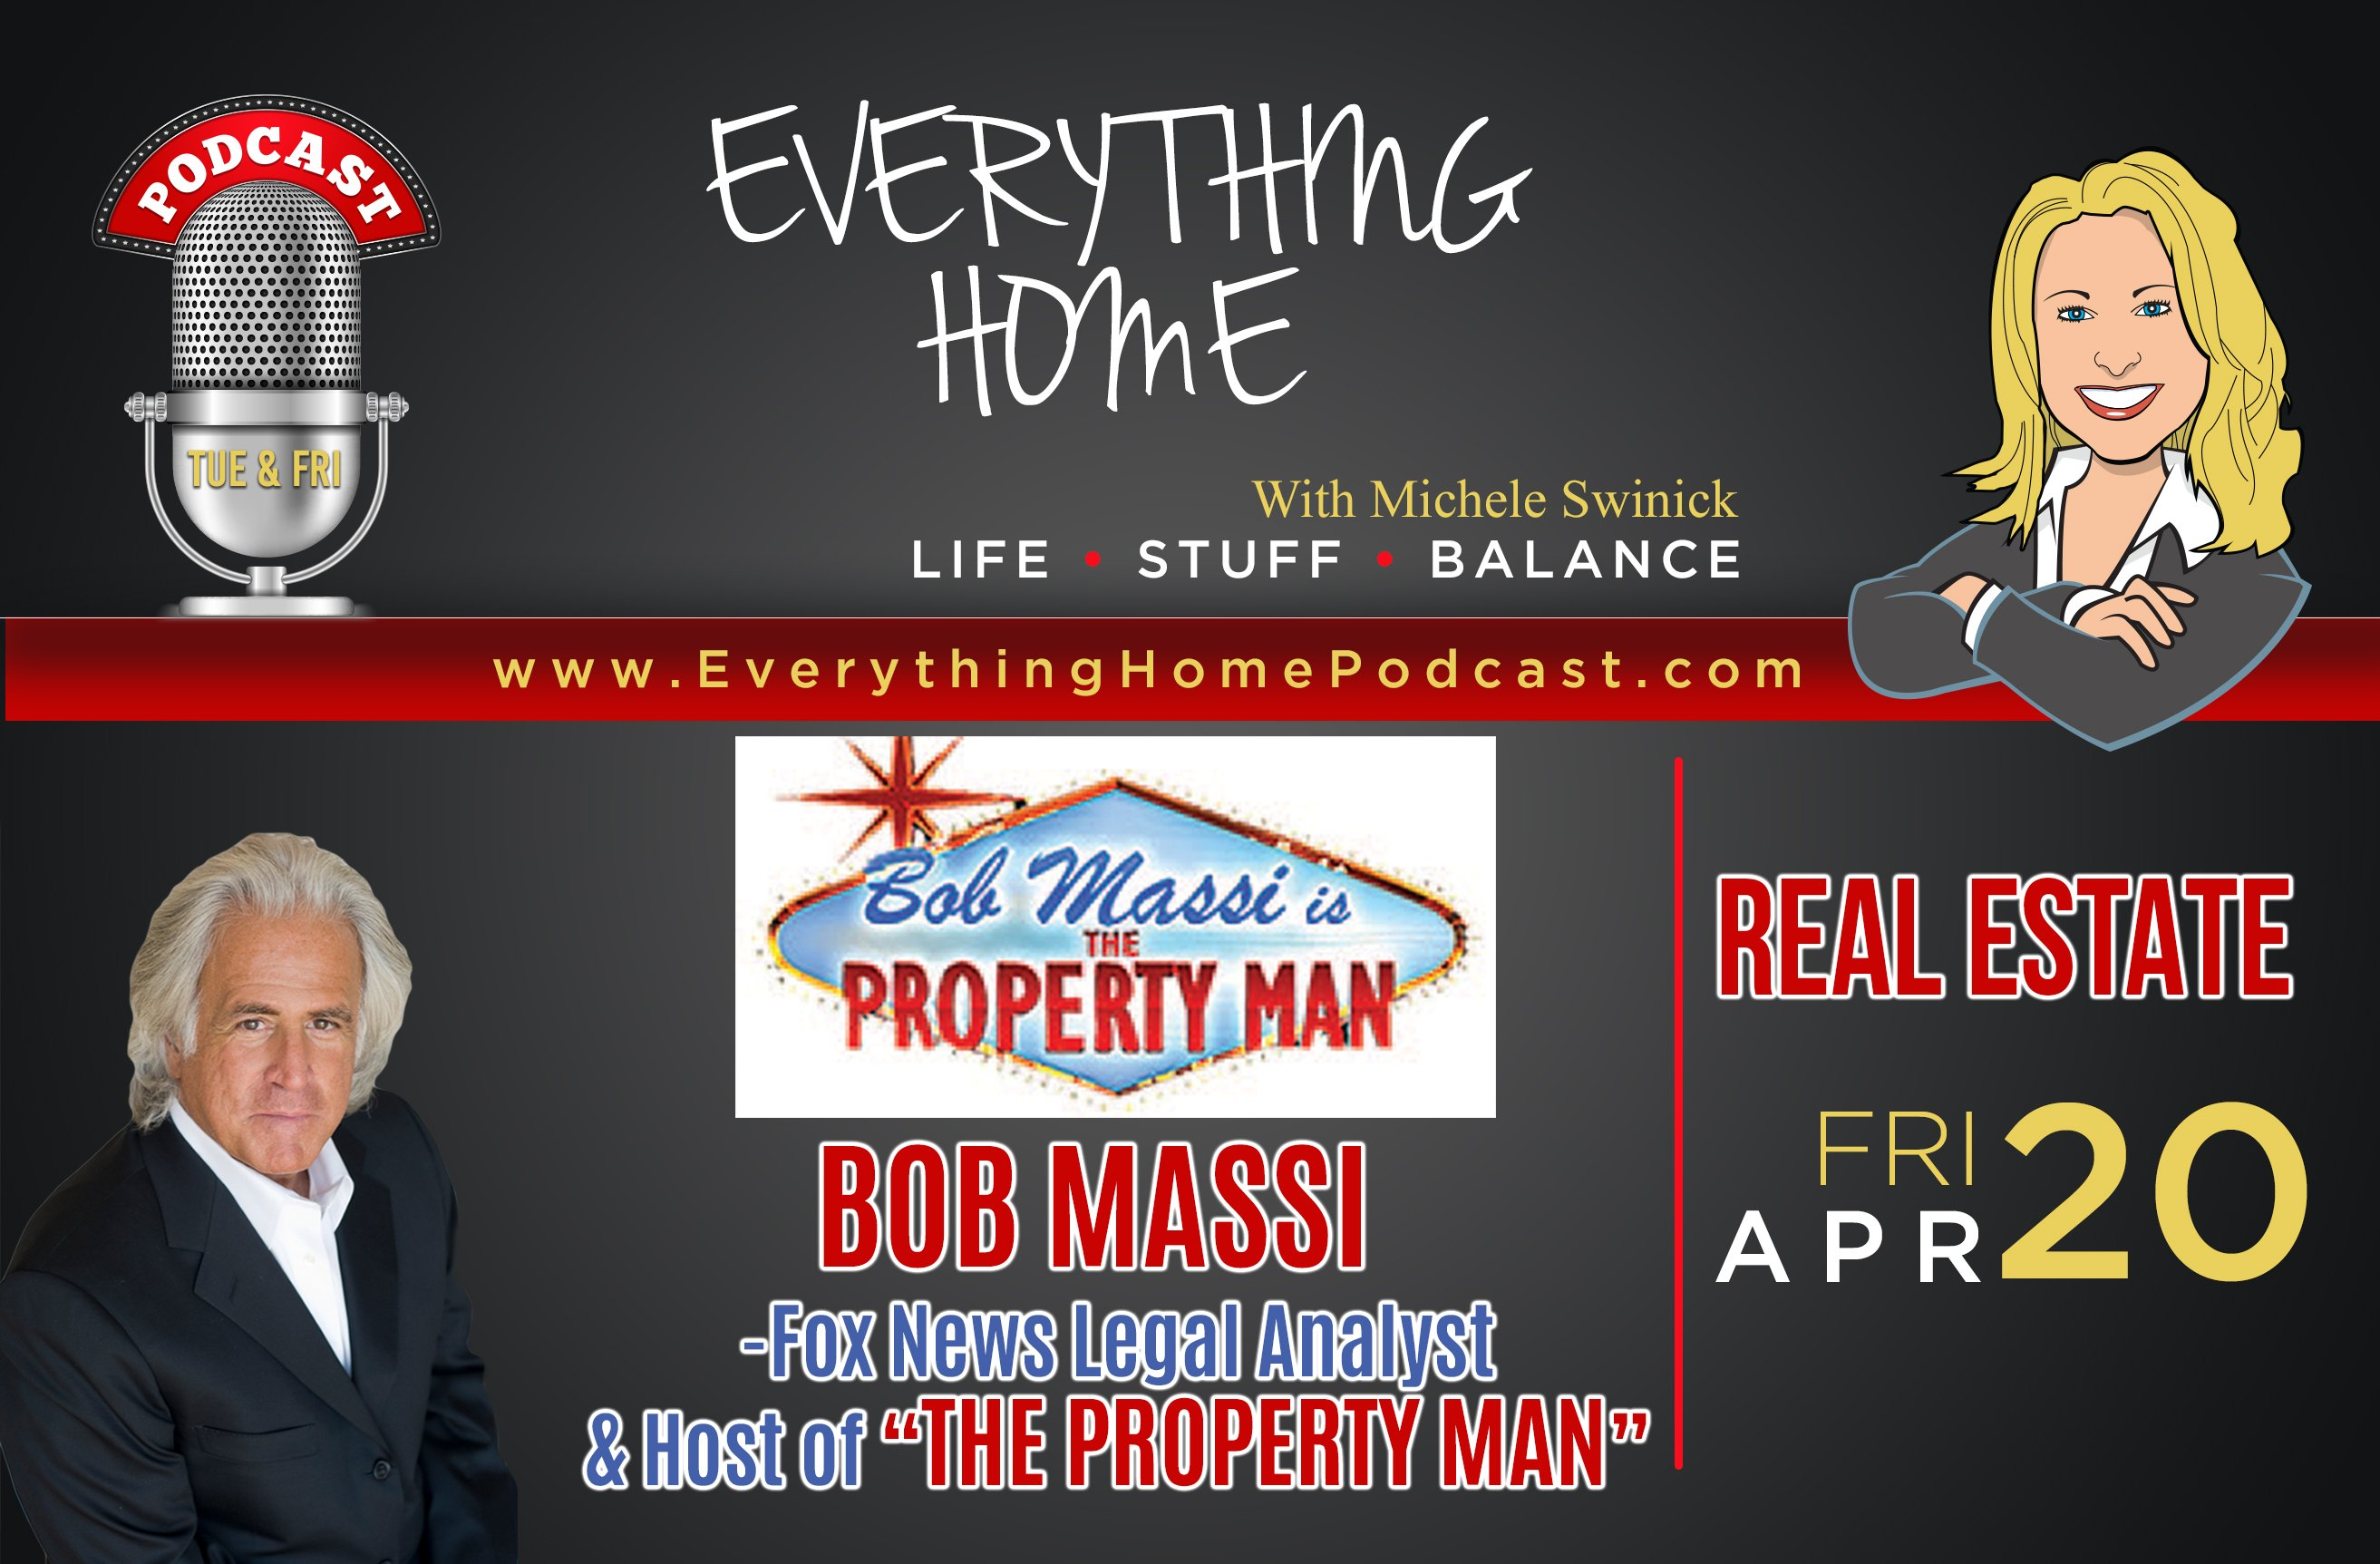 PODCAST AD - BOB MASSI